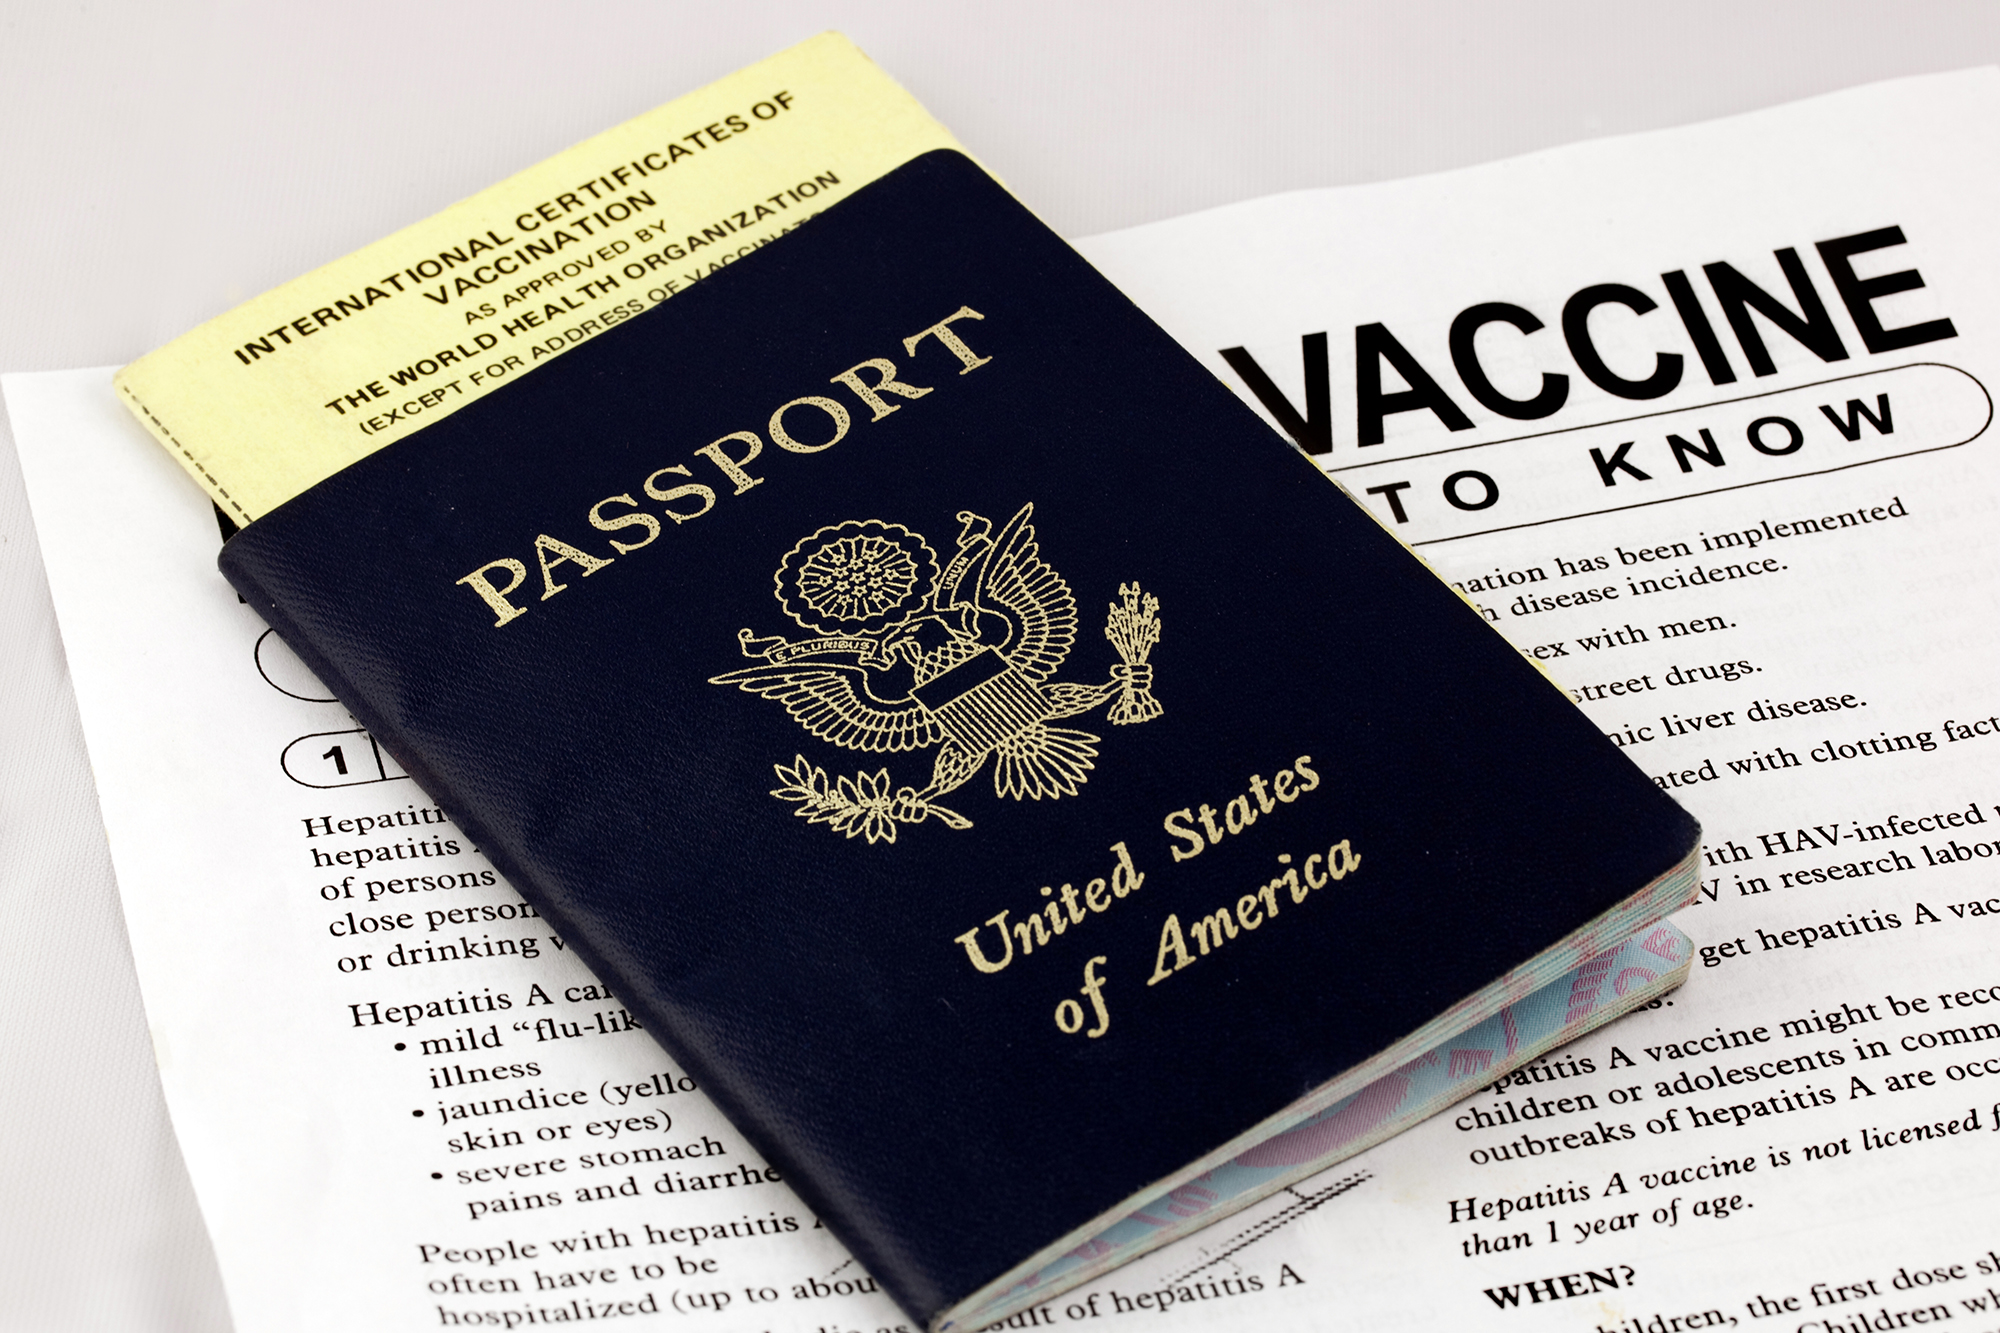 Travel vaccine paperwork for health clearence and passport